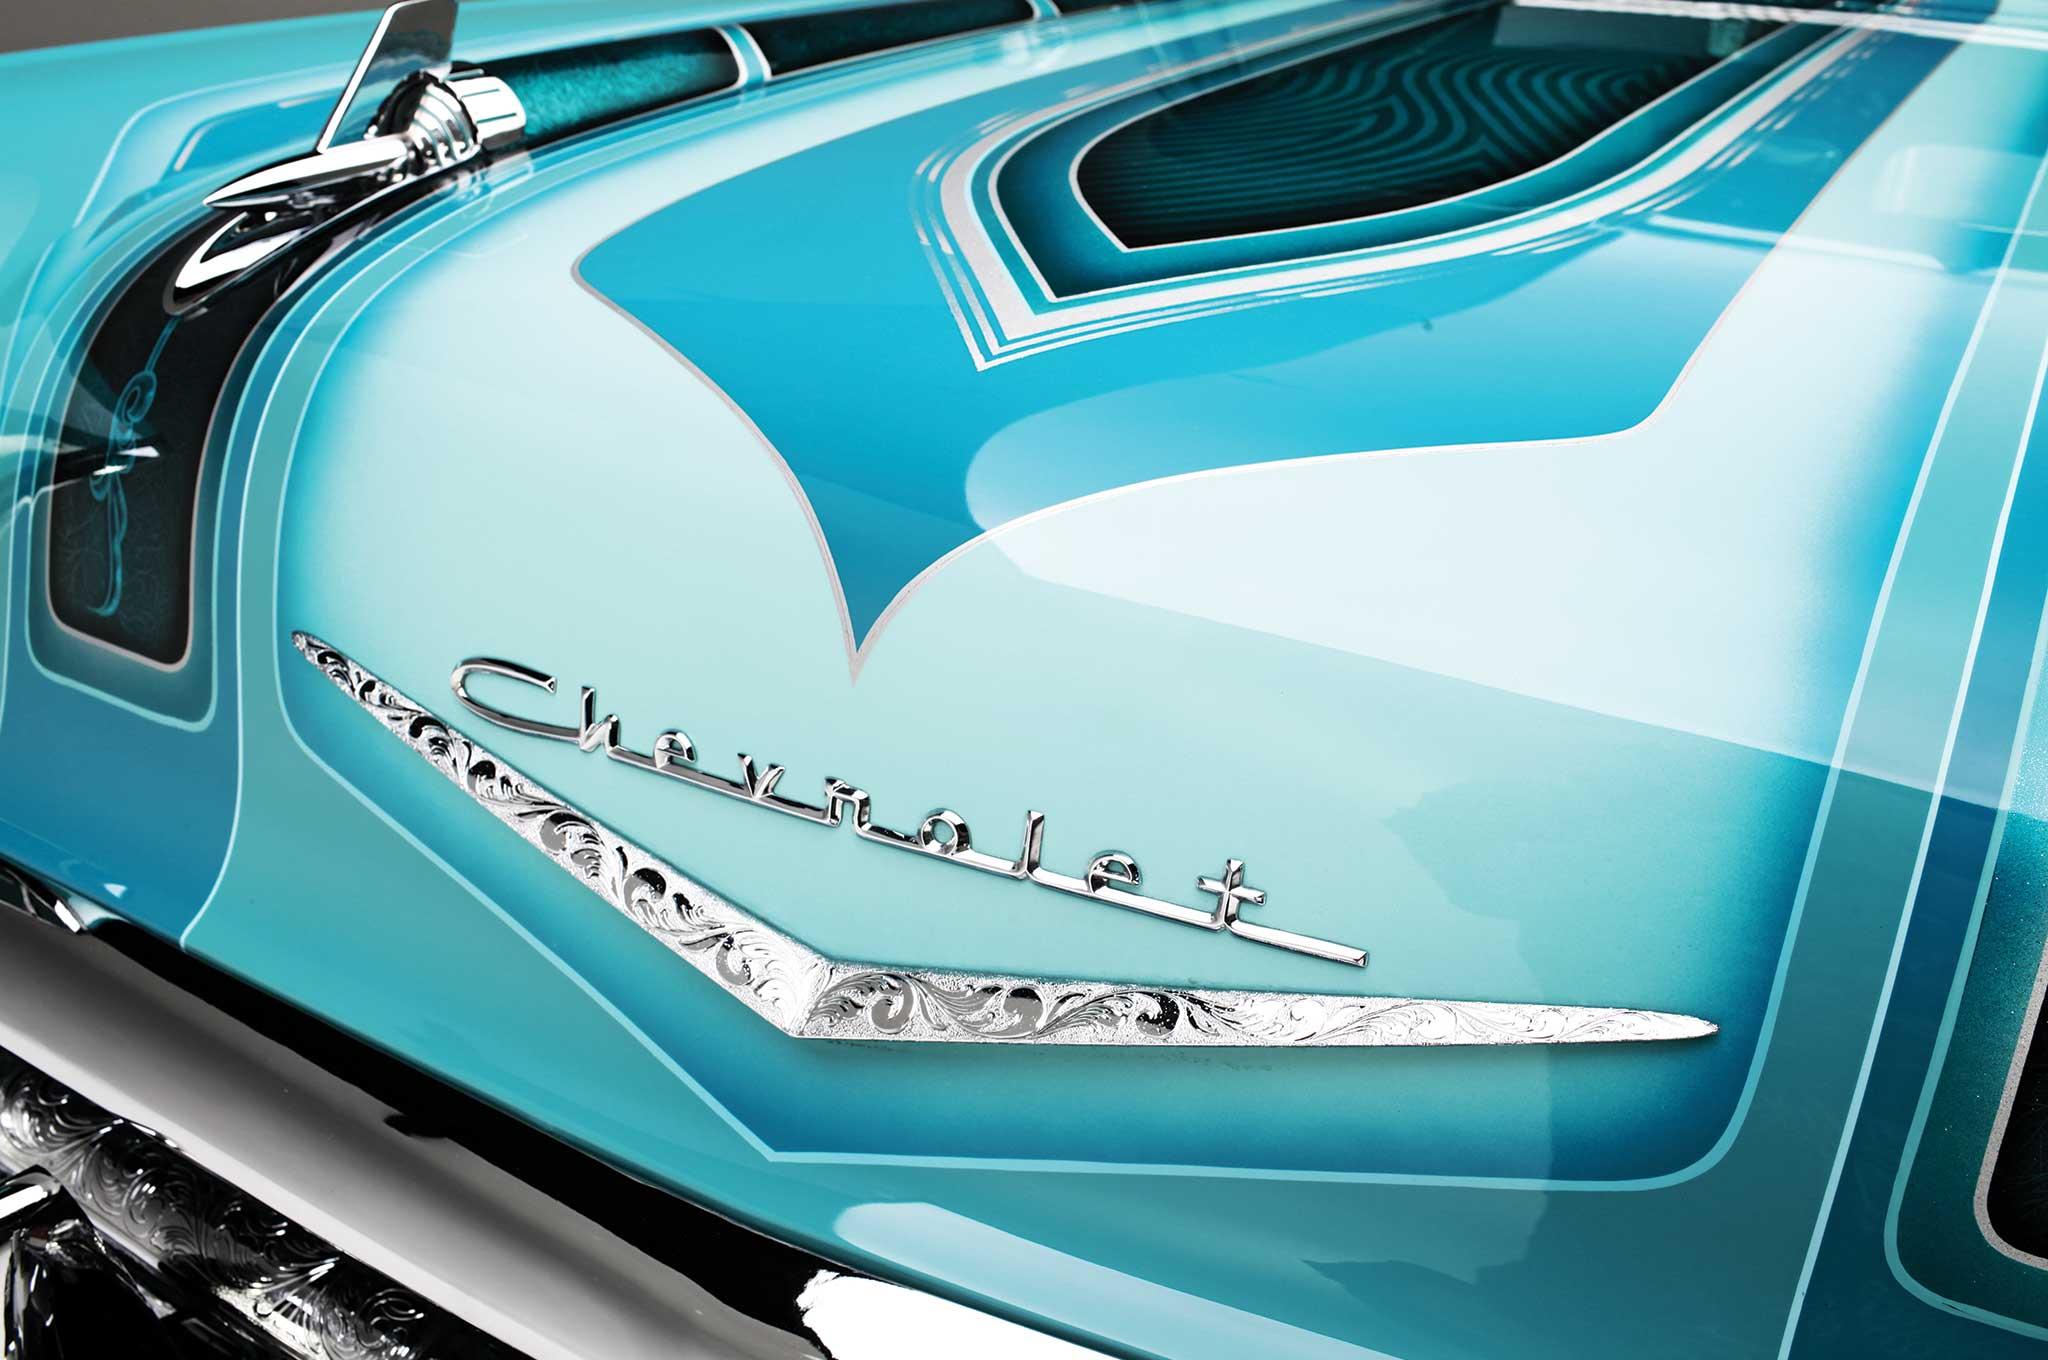 1957 chevrolet bel air hood badge 006